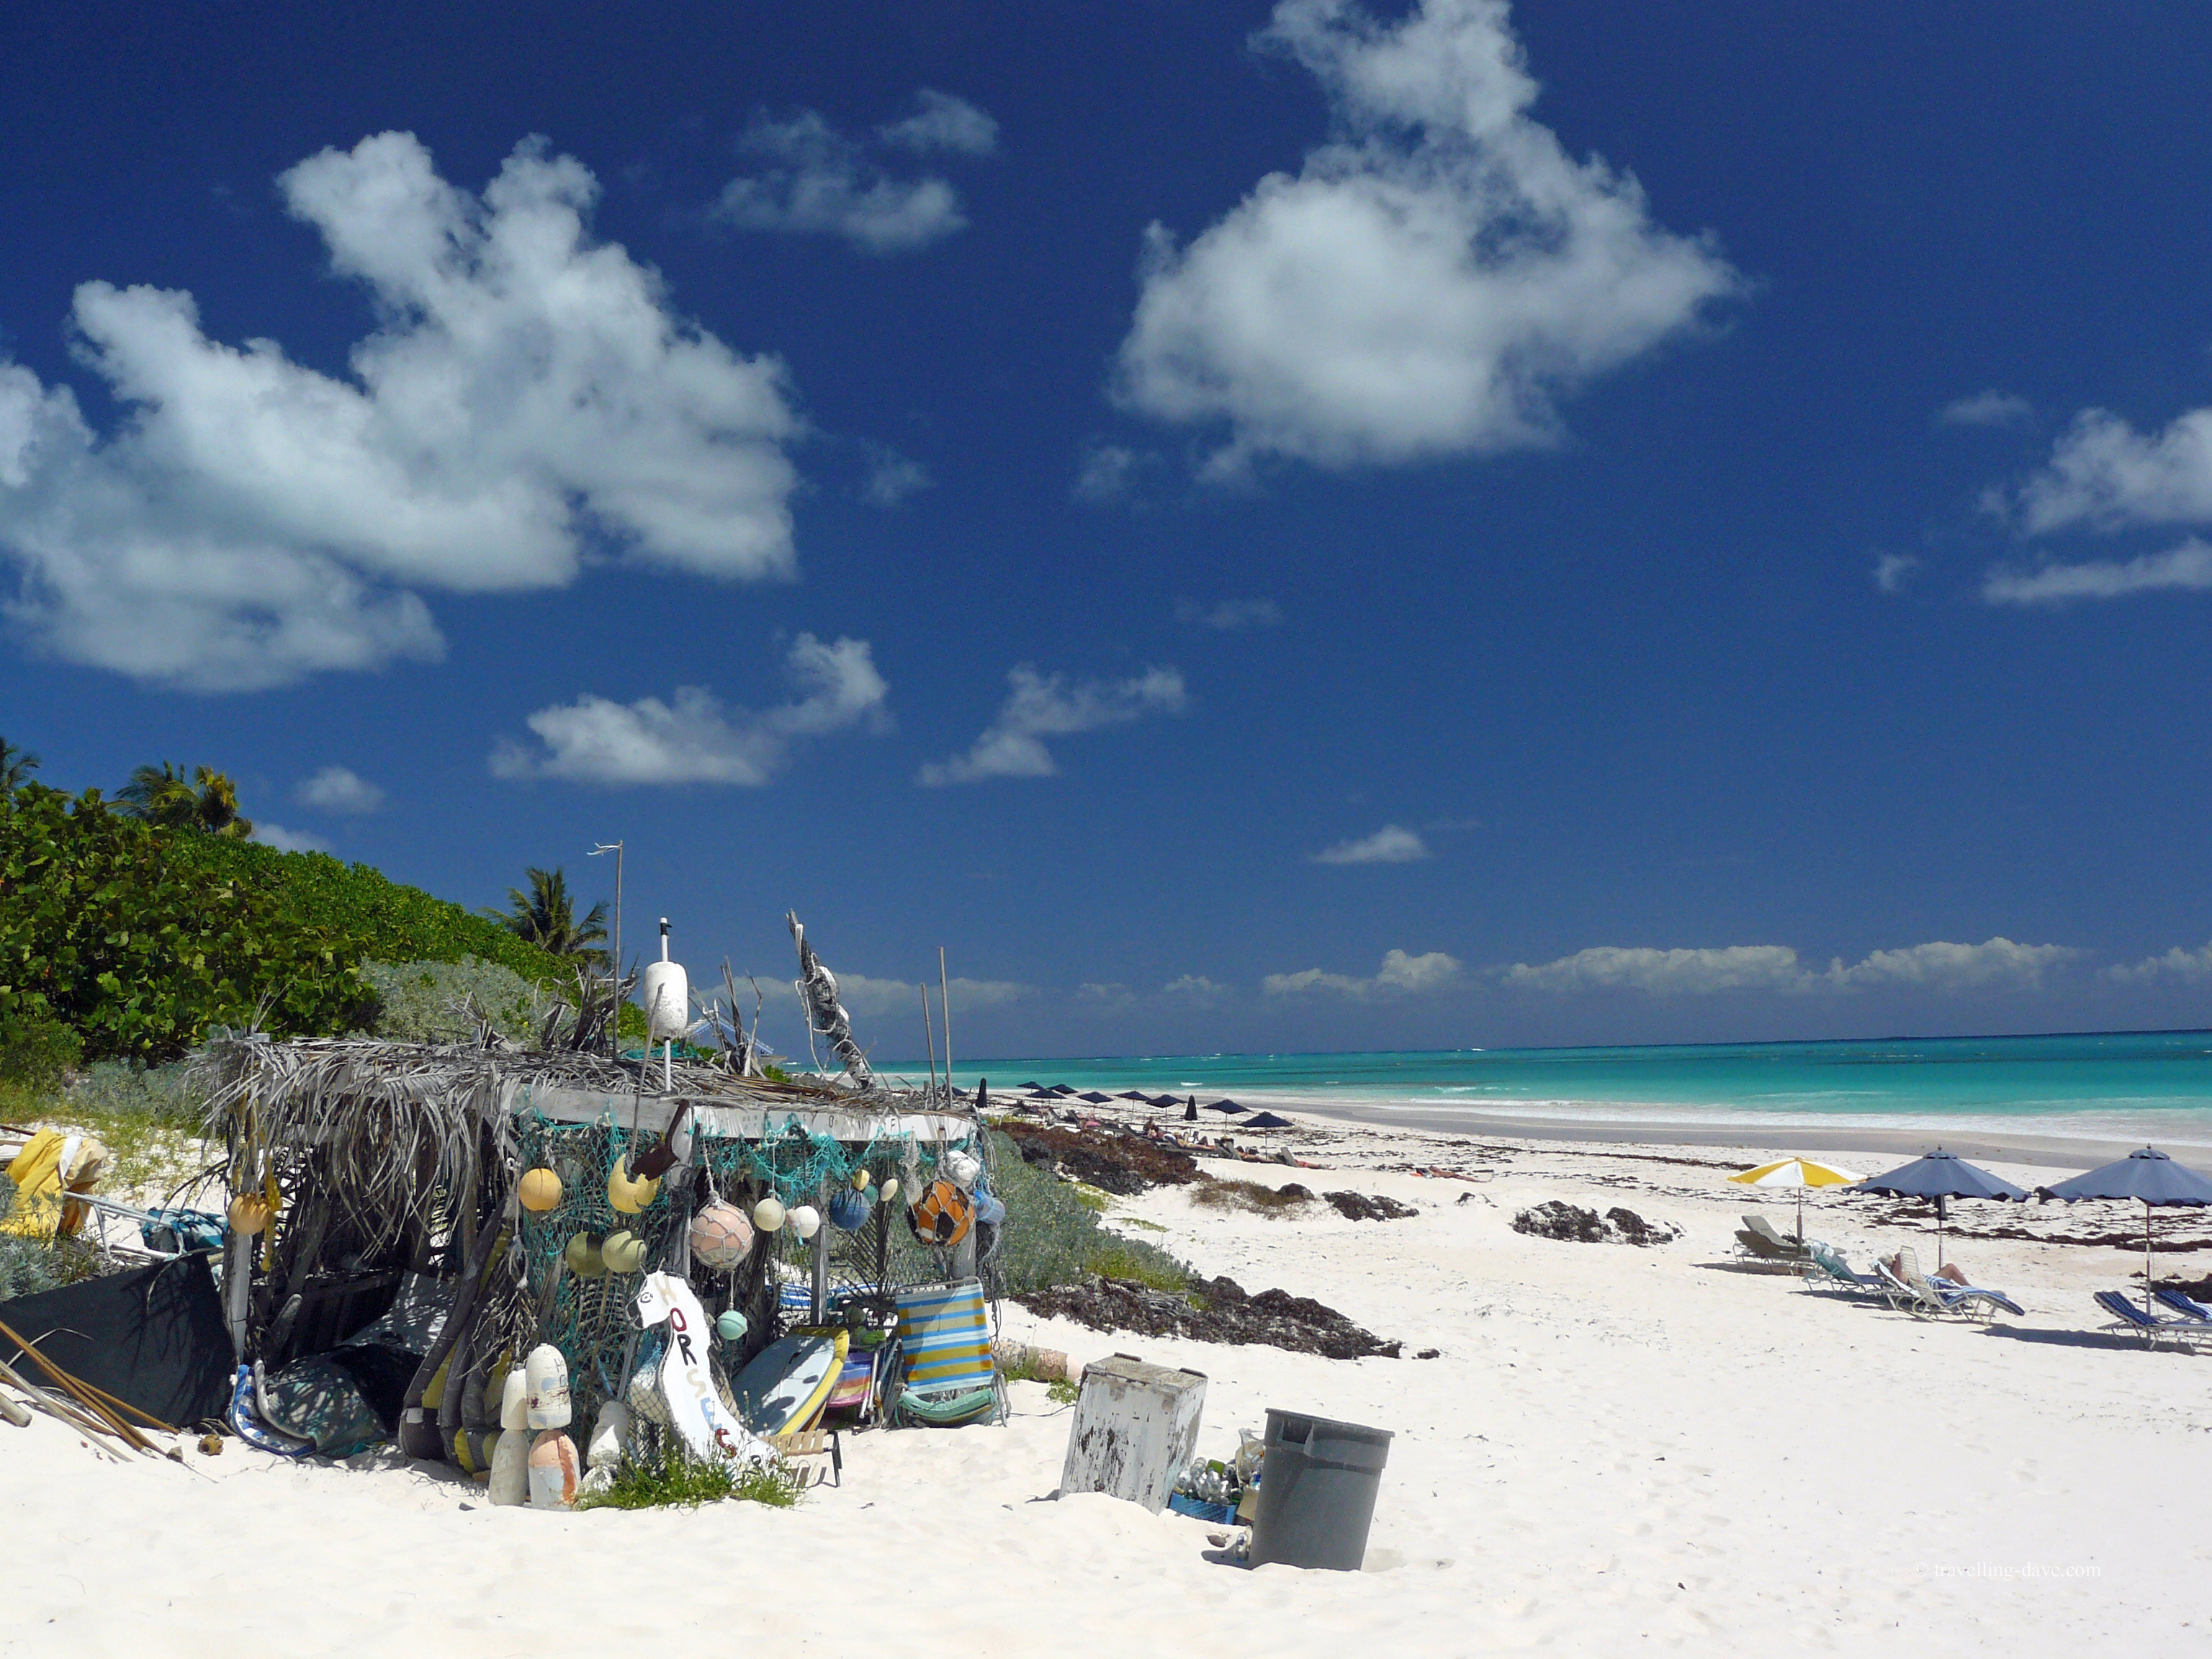 View of the beach at Harbour Island in the Bahamas